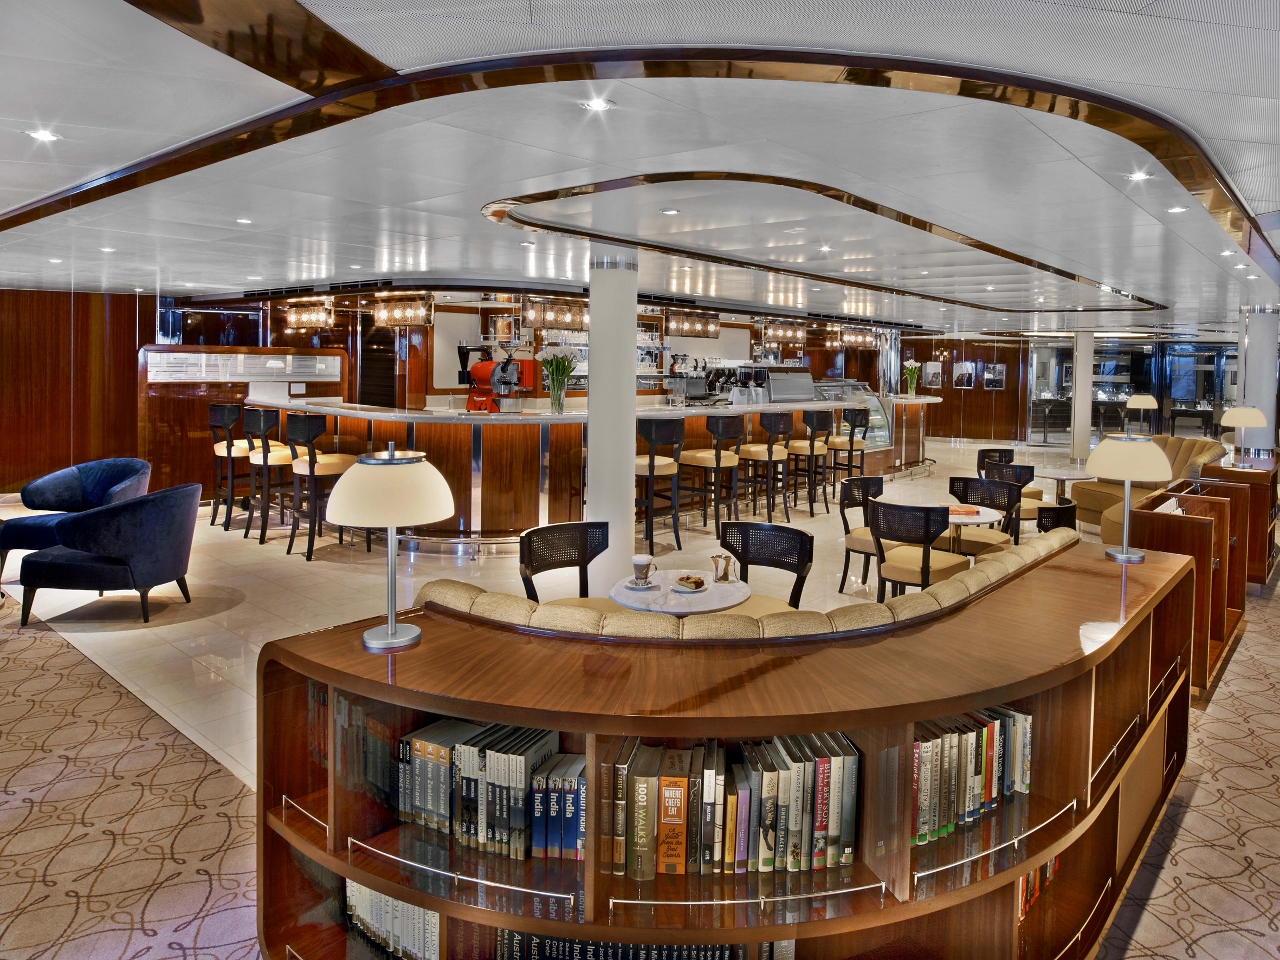 The new look Seabourn Square on Seabourn Encore.